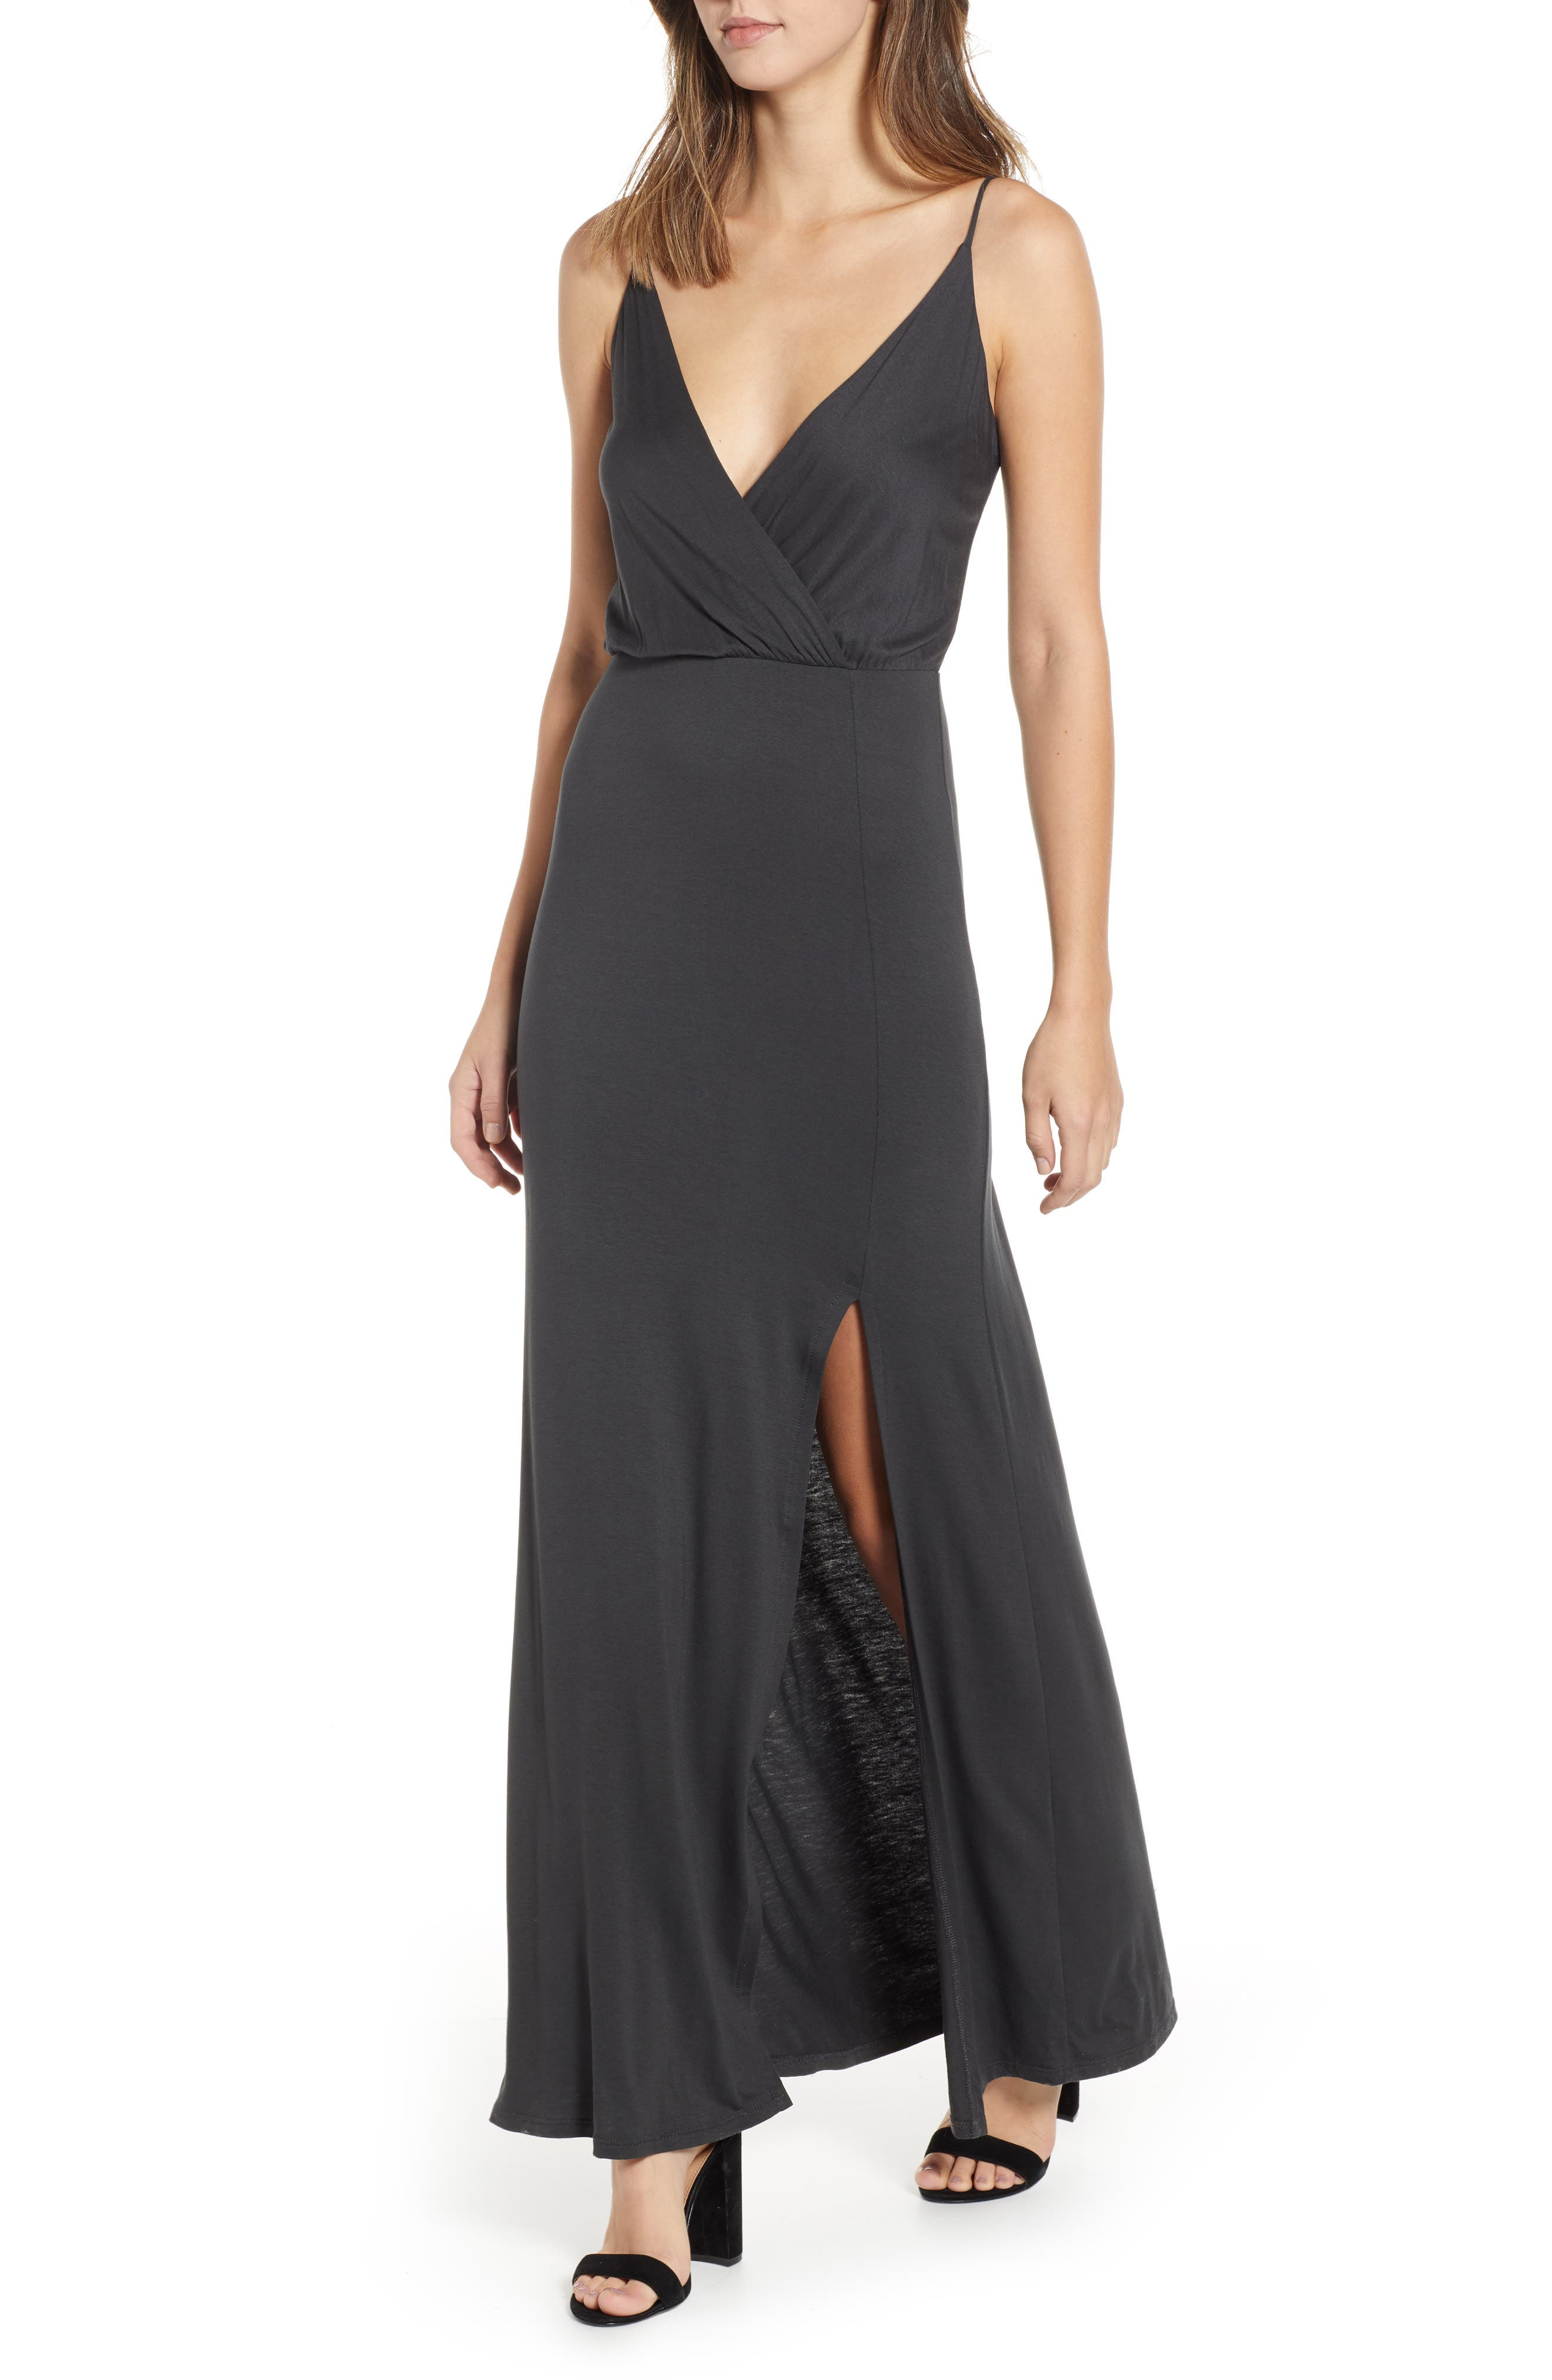 ALL IN FAVOR, Surplice Neck Knit Maxi Dress, Main thumbnail 1, color, CHARCOAL